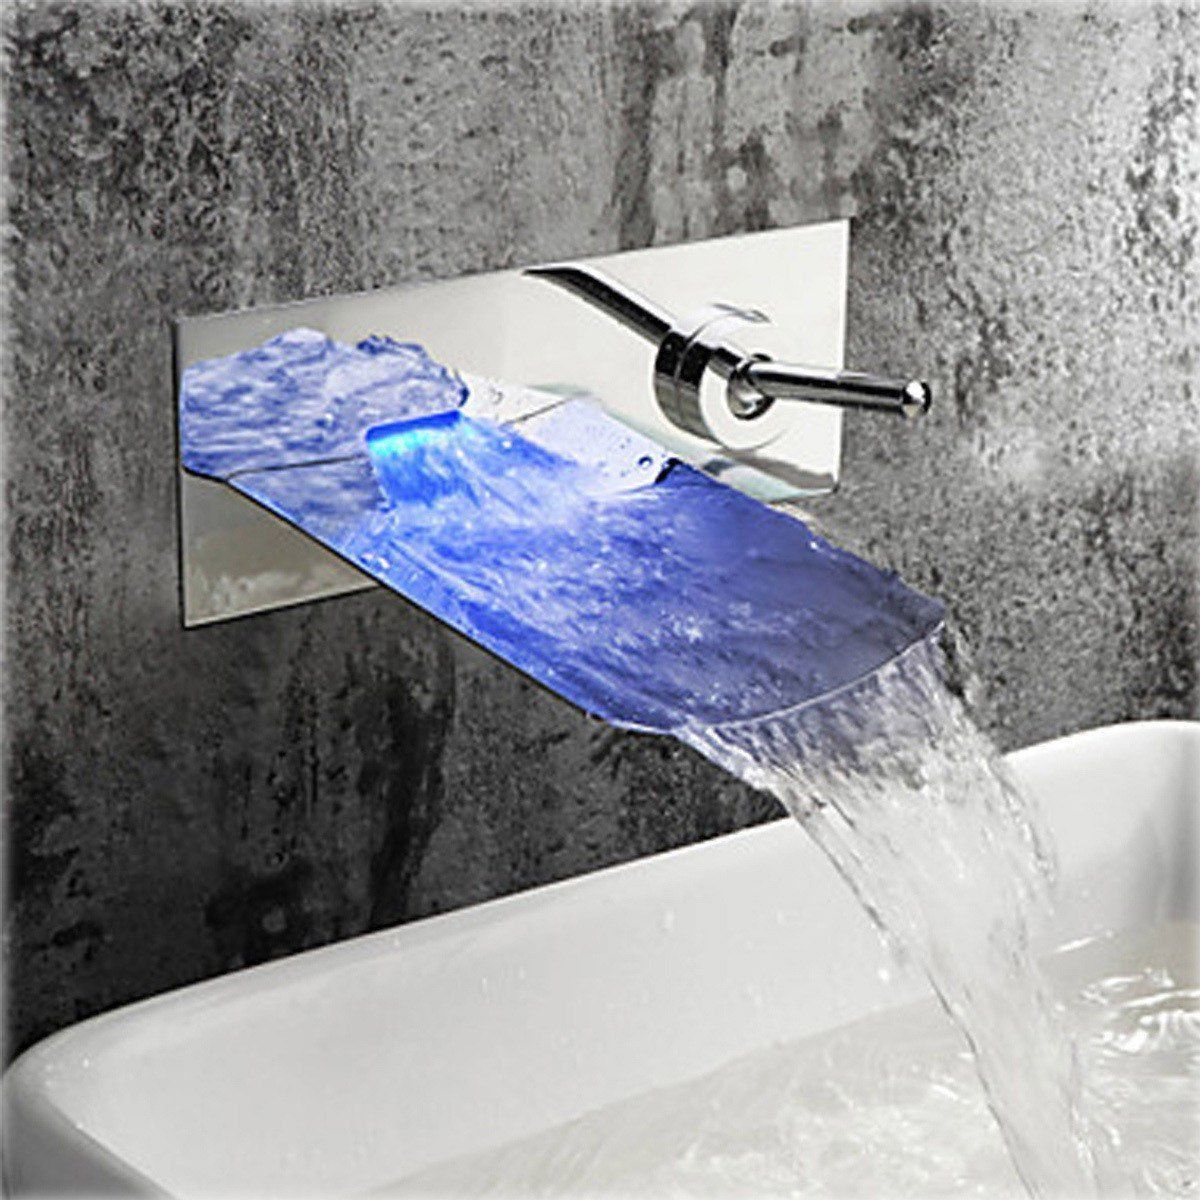 Led Bathroom Basin Brass Sink Waterfall Chrome Finish Mixer Tap